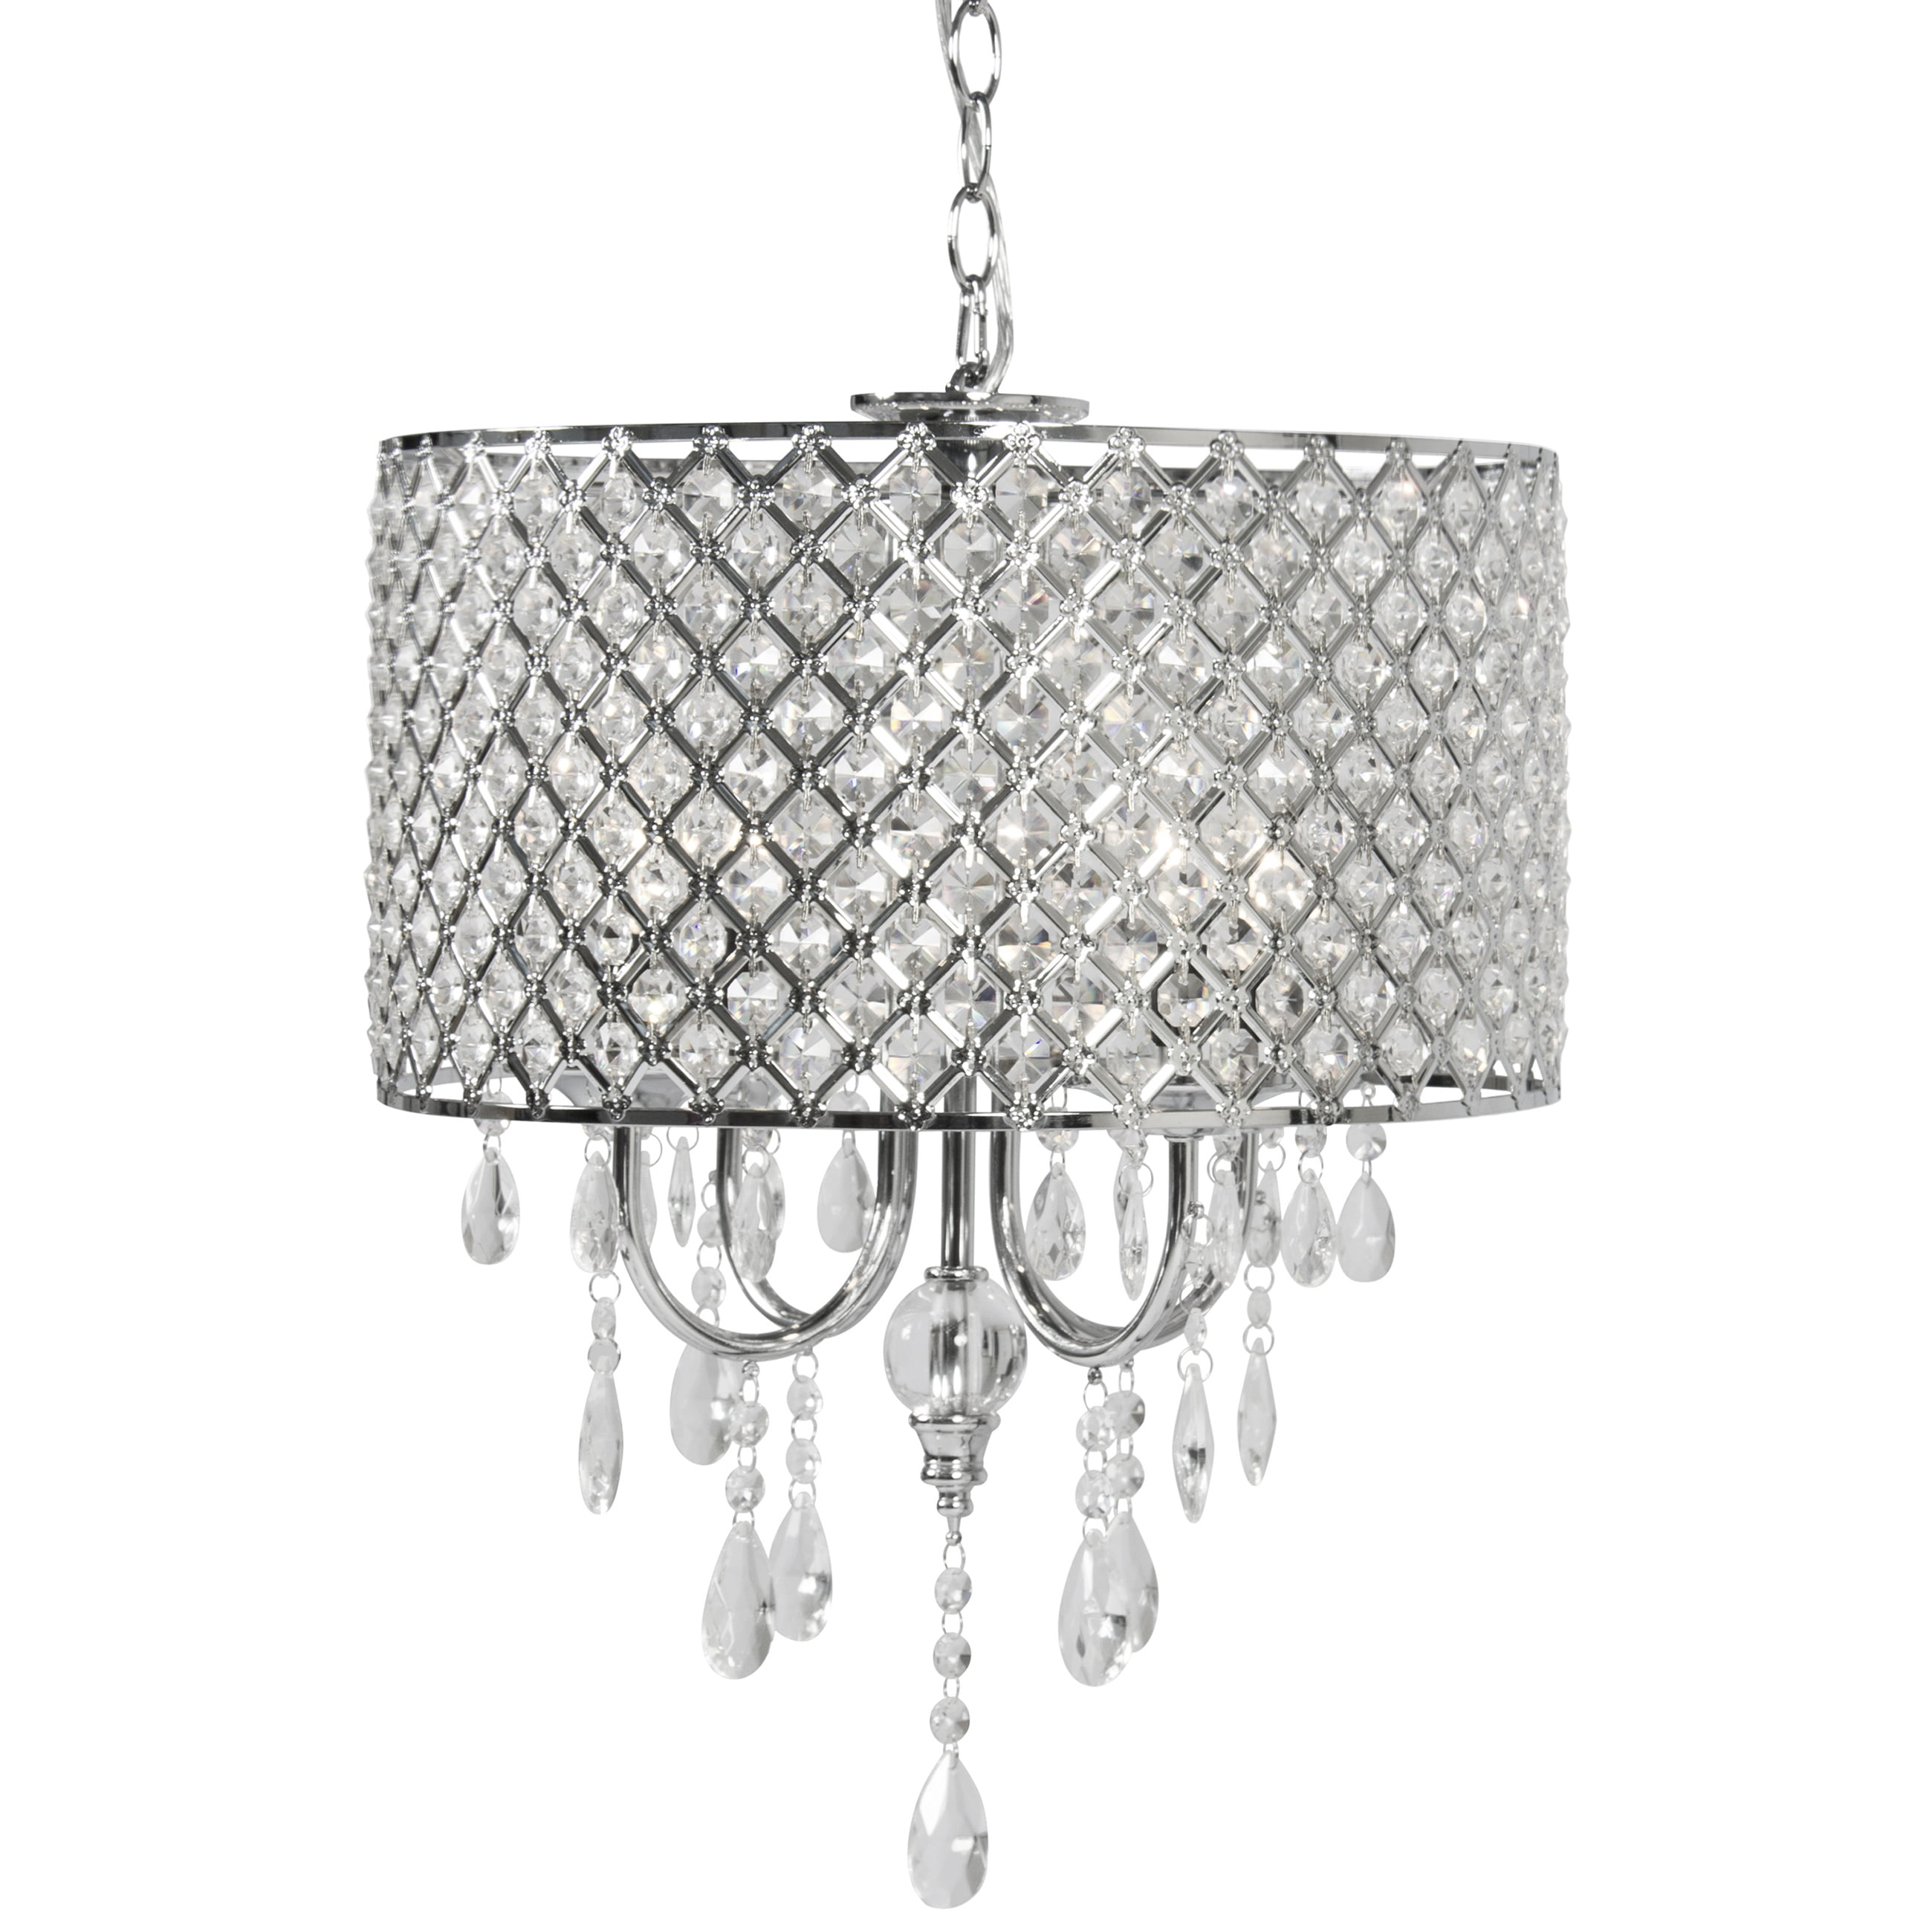 BCP Crystal Chandelier Lighting Pendant Glass Ceiling Lamp Center Light by